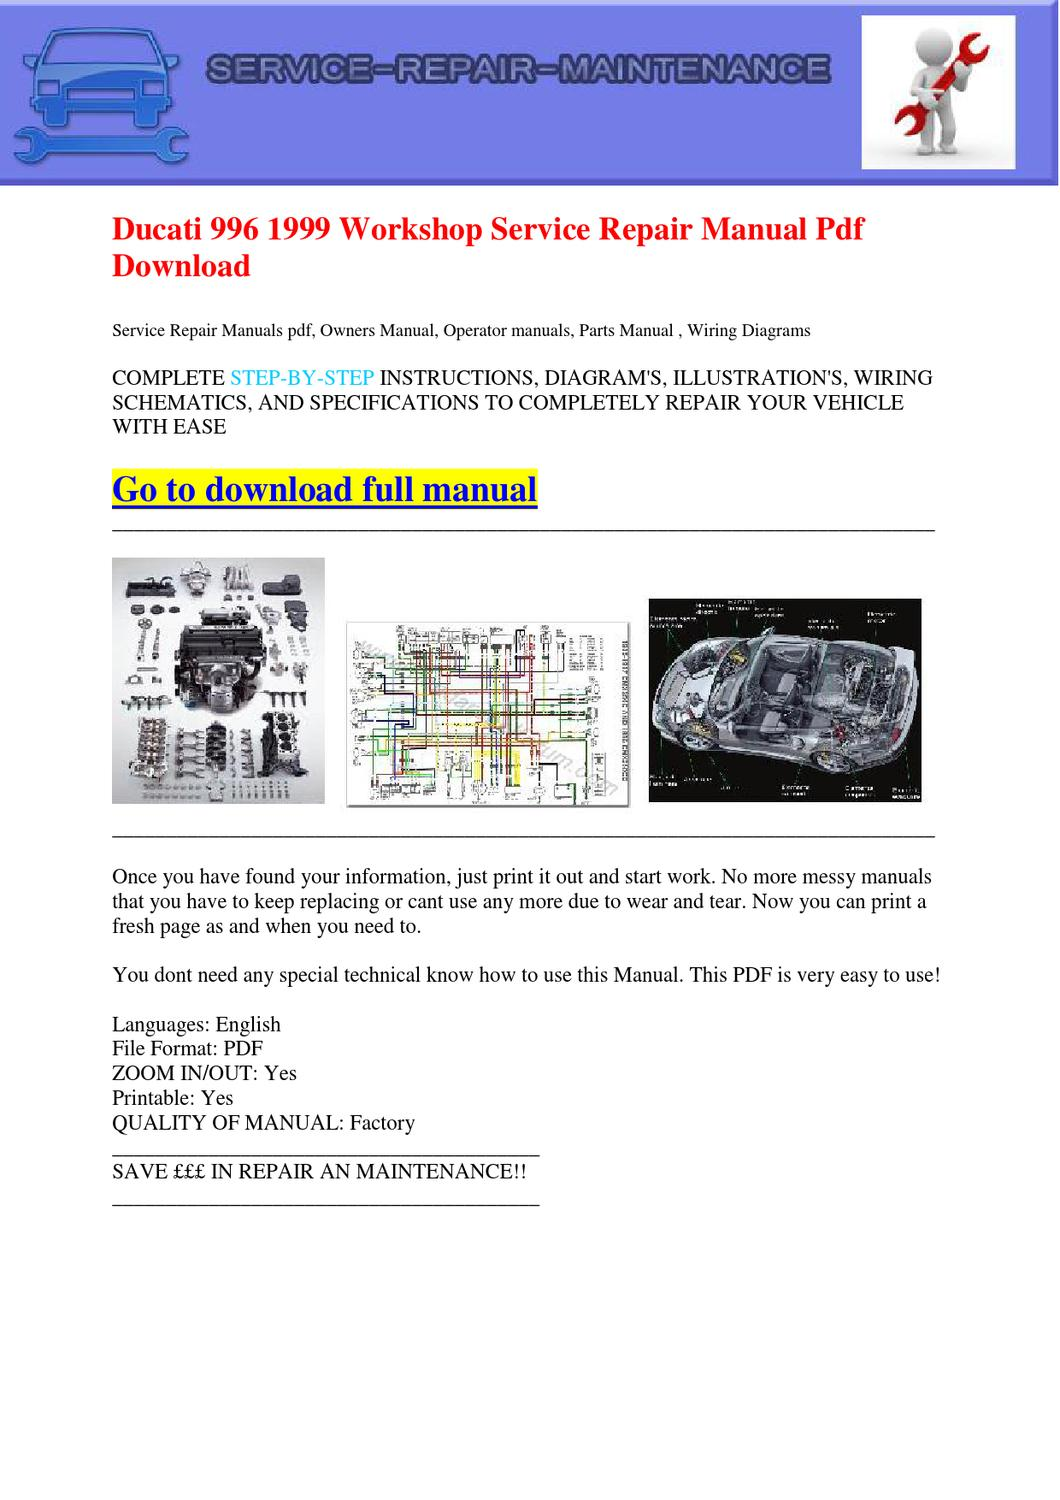 Ducati 996 Wiring Diagram Workshop Manual Seniorsclub It Electron Gossip Electron Gossip Pietrodavico It